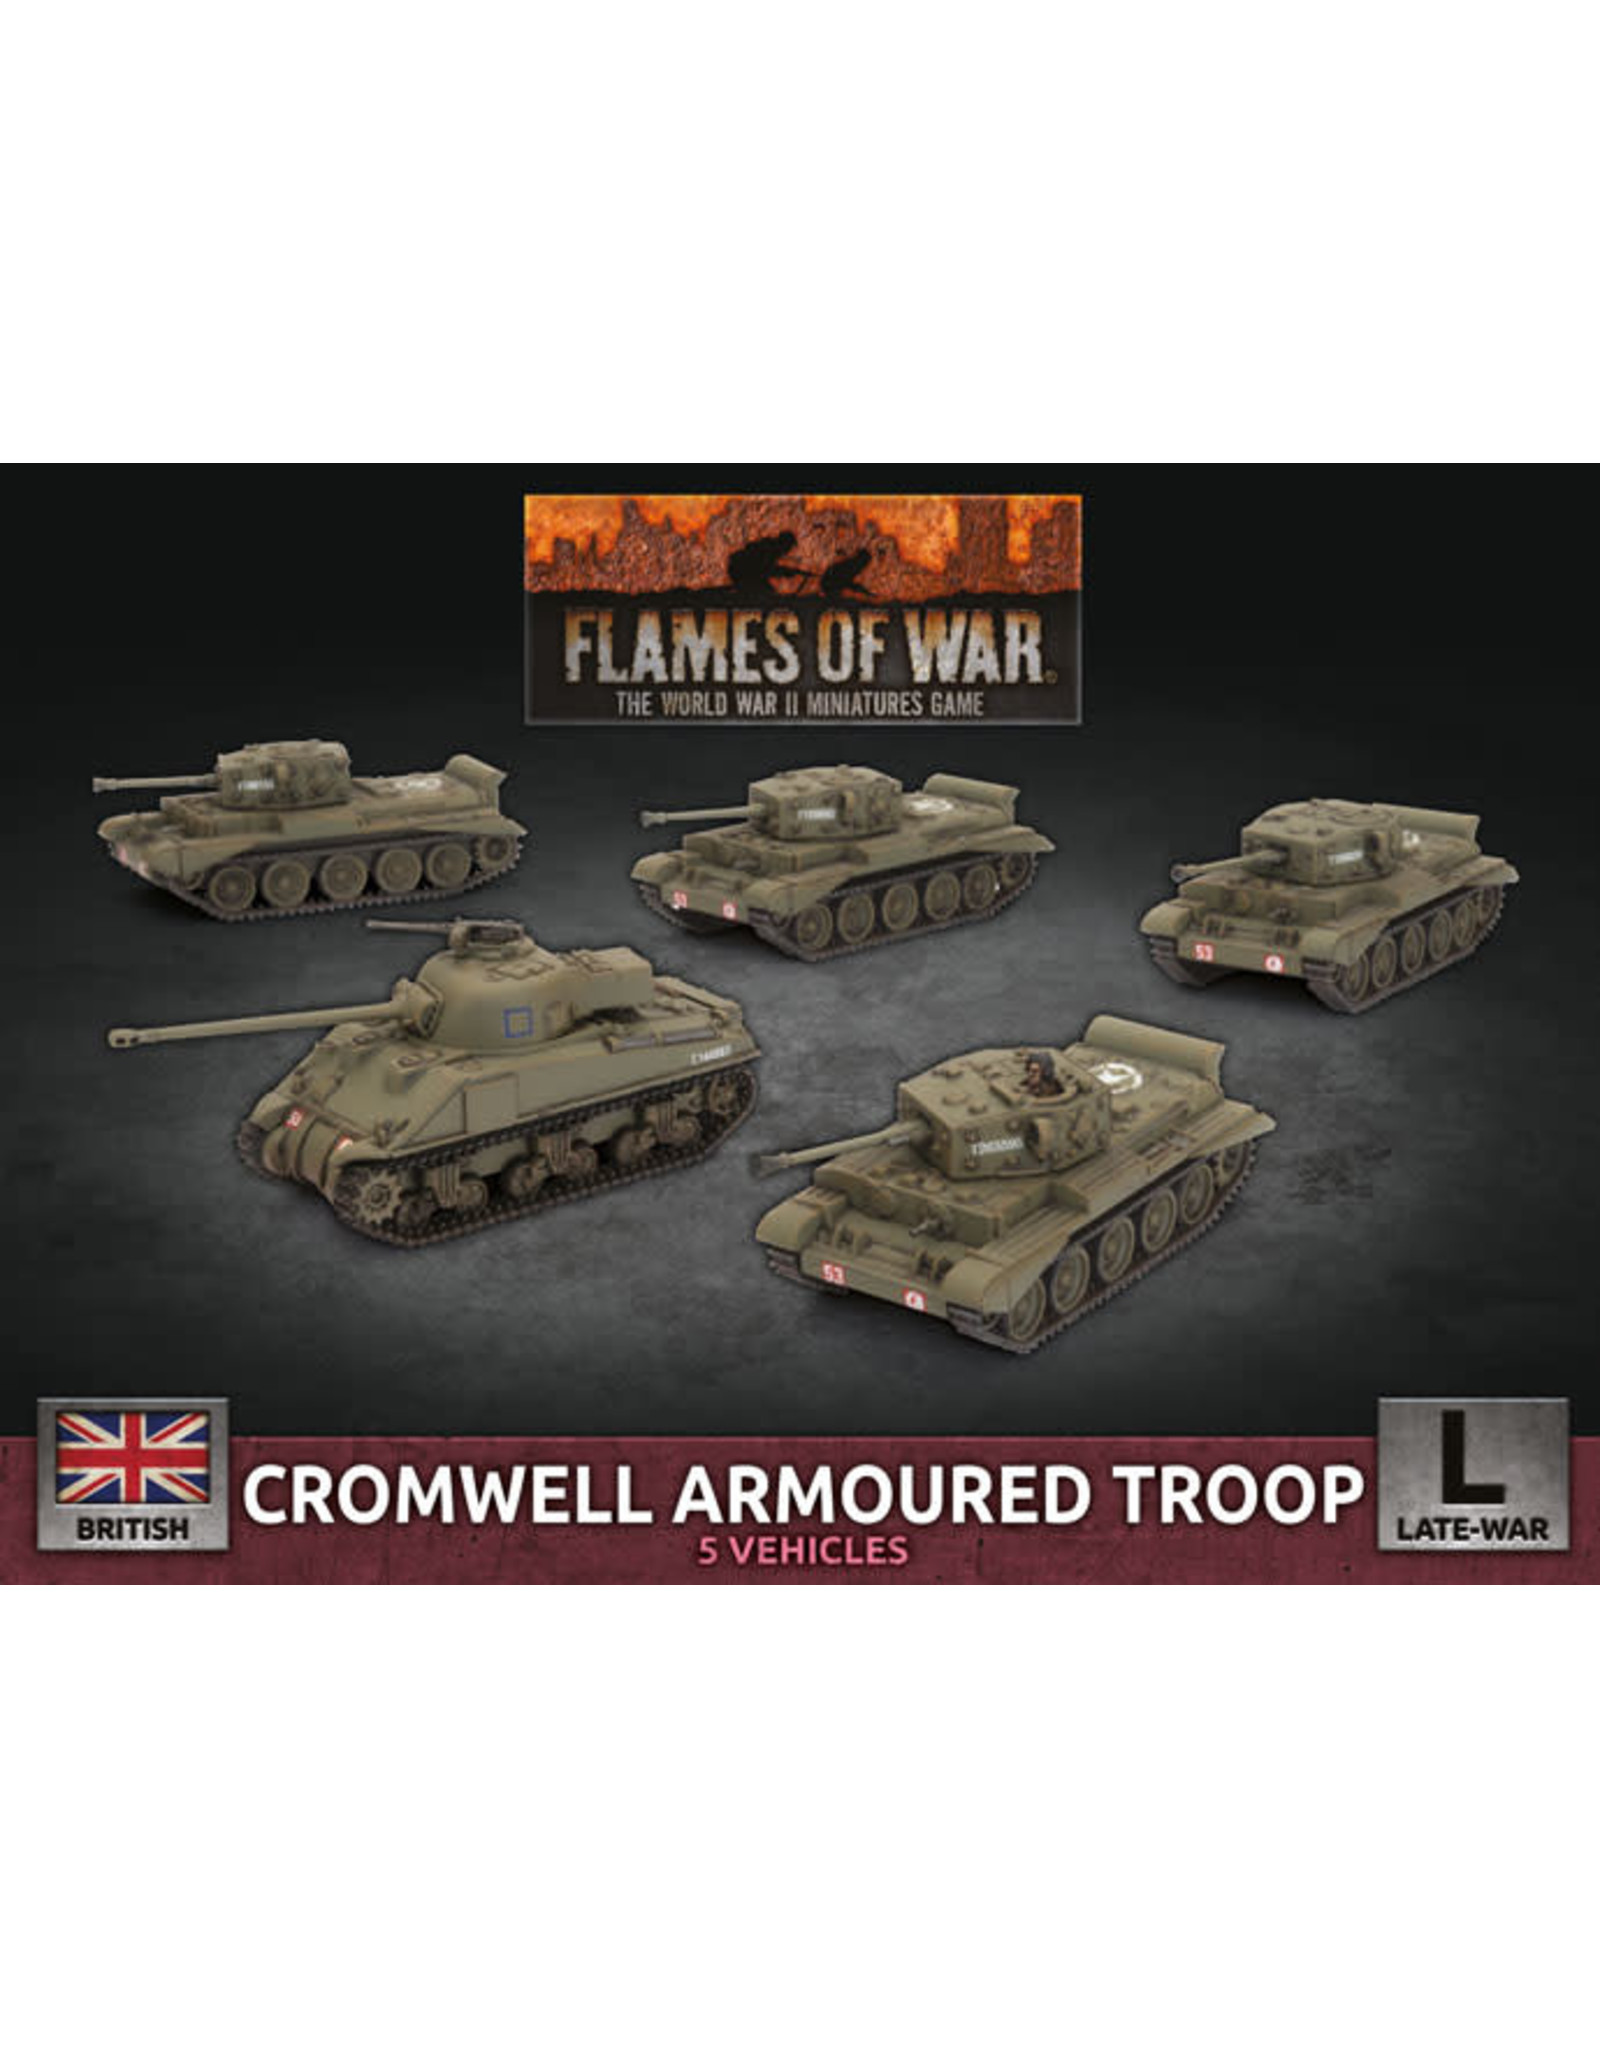 Battlefront Miniatures Flames of War: Cromwell Armoured Troop